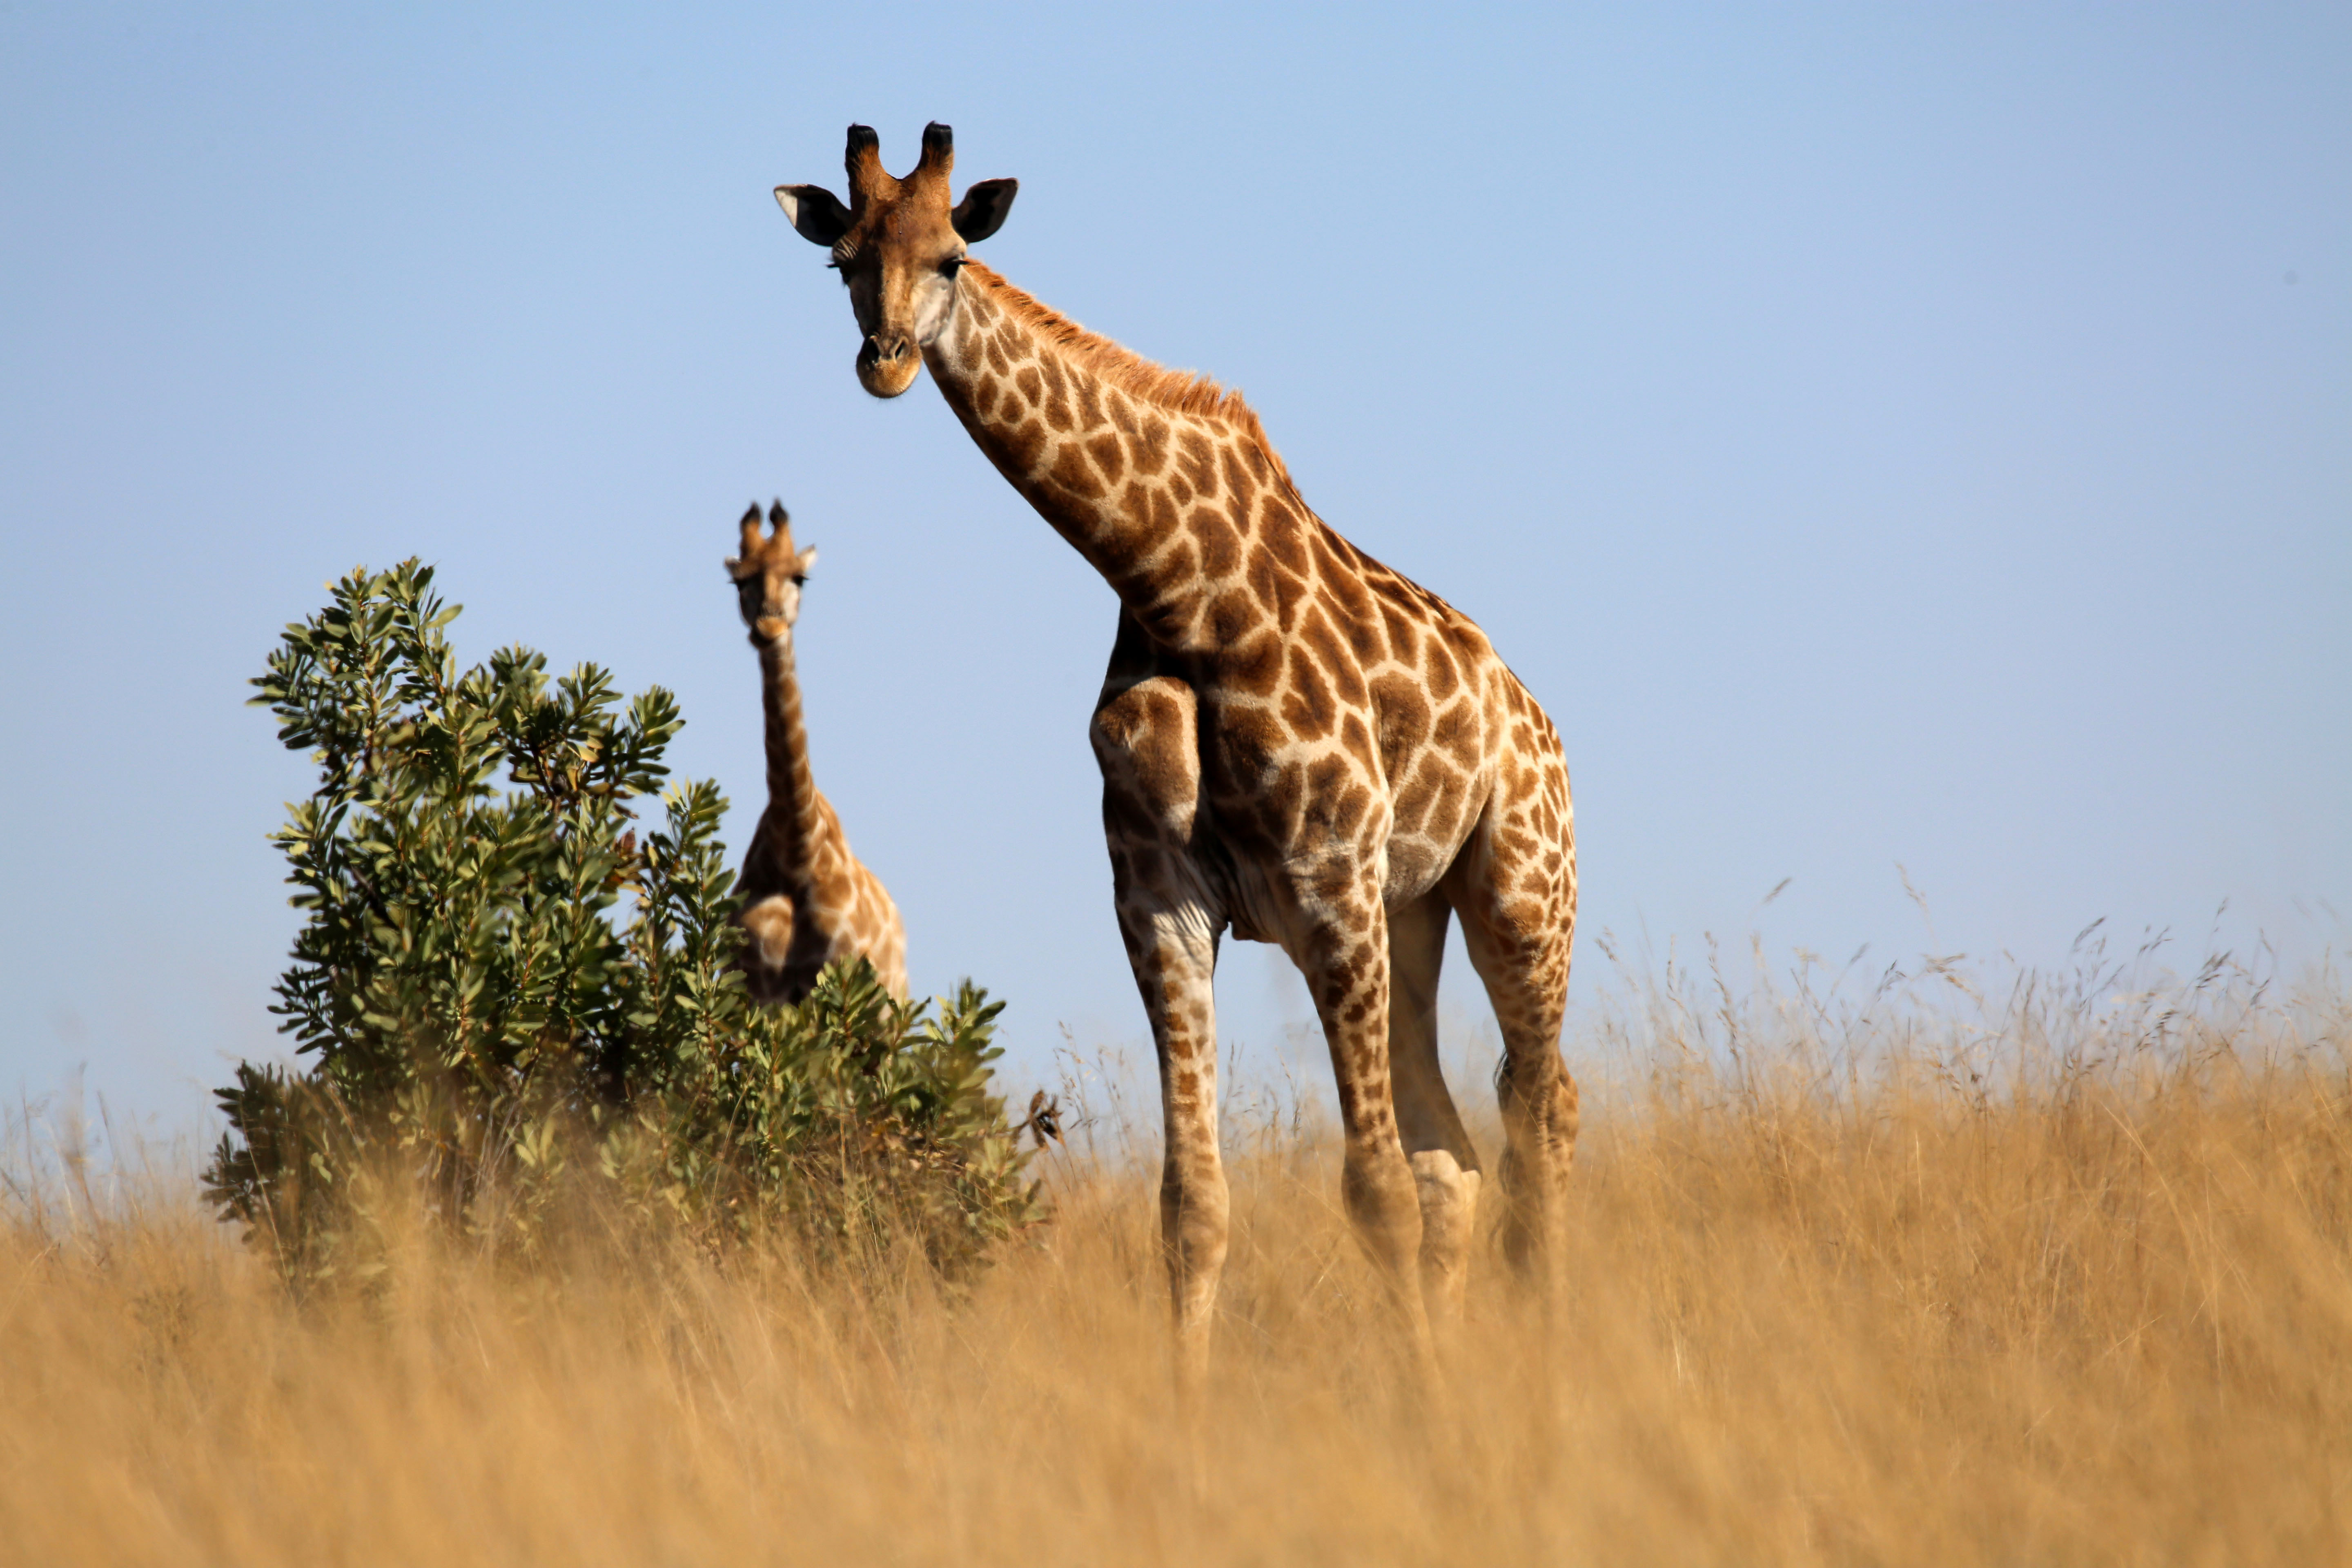 128391 download wallpaper Animals, Giraffe, Animal, Savanna, Grass screensavers and pictures for free